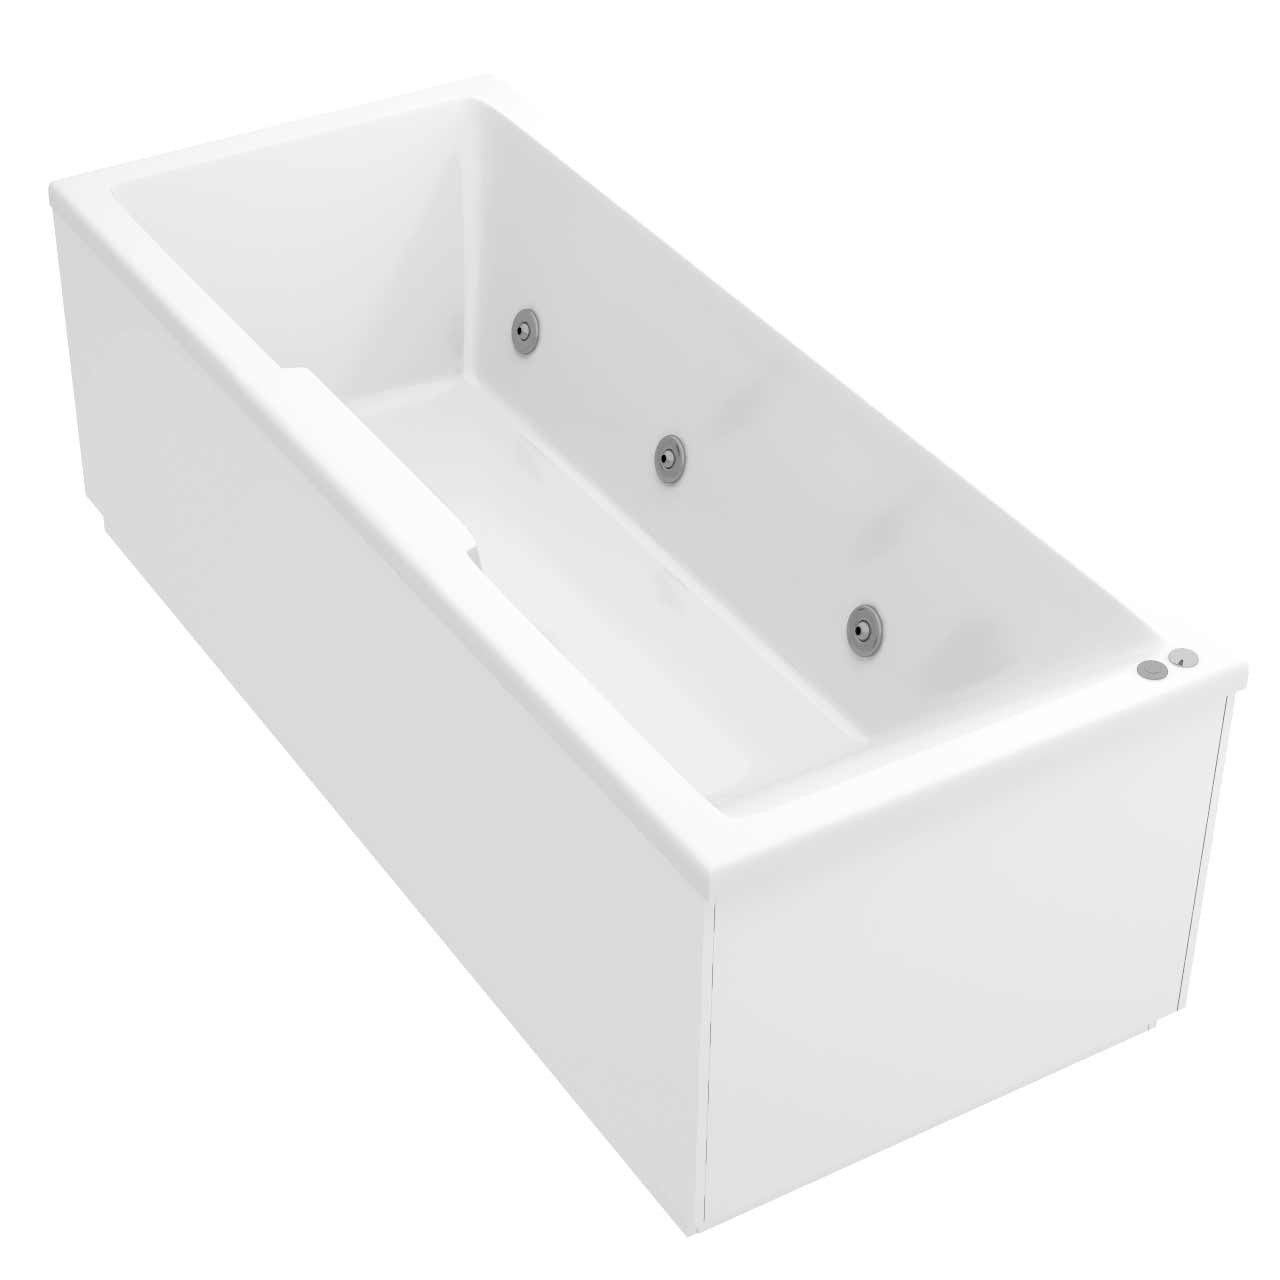 Legend Right Hand 6 Jet Chrome V-Tec Whirlpool Bath 1700x700mm